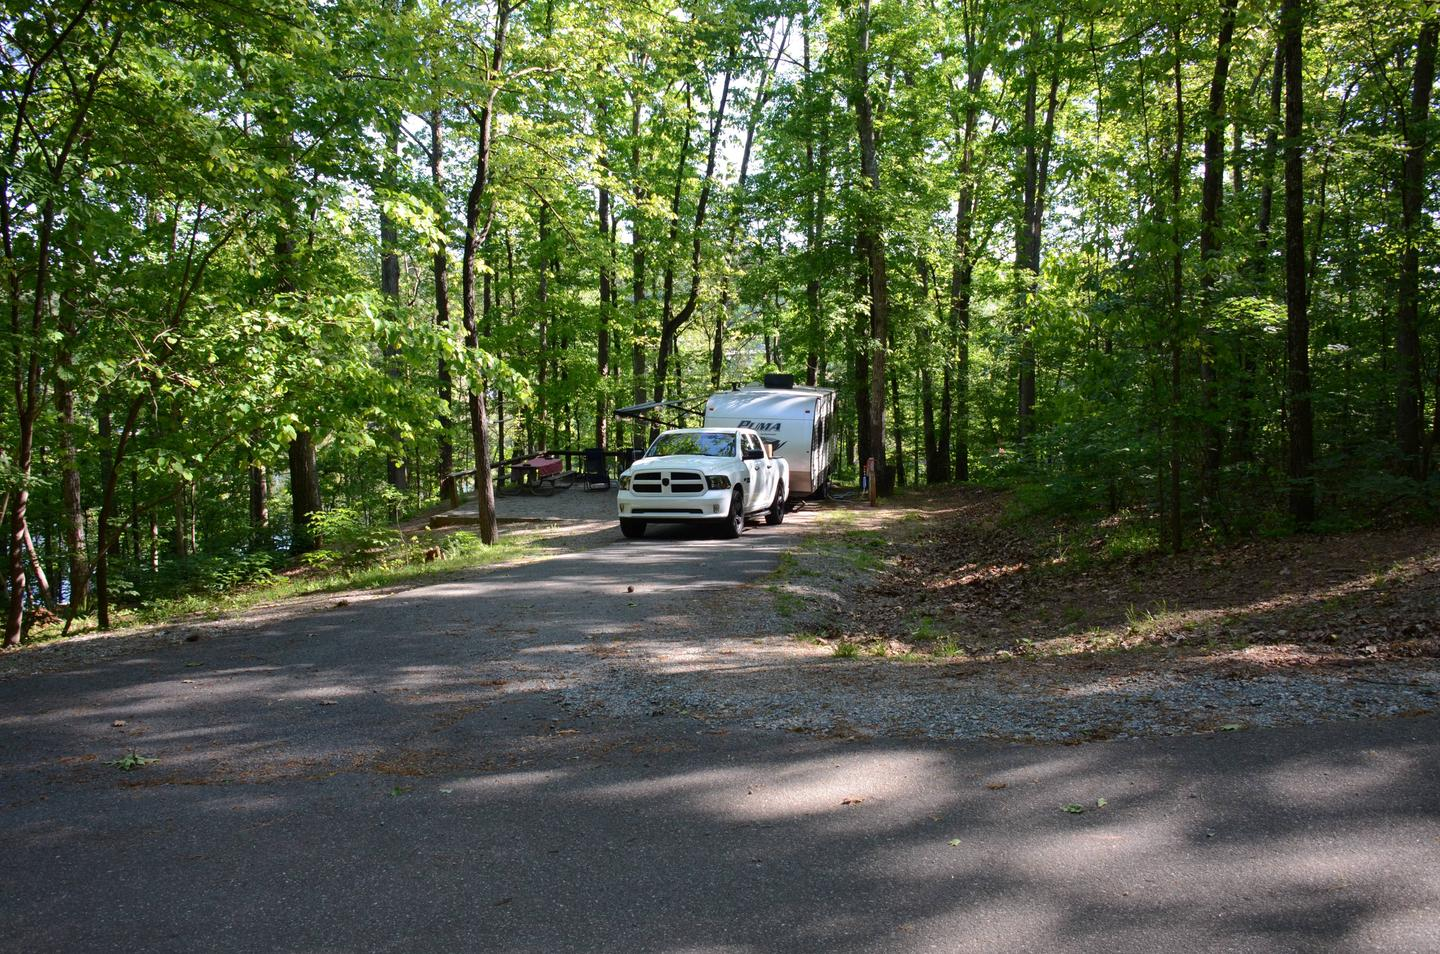 Driveway entrance angle, utilities-side clearance.McKinney Campground, campsite 8